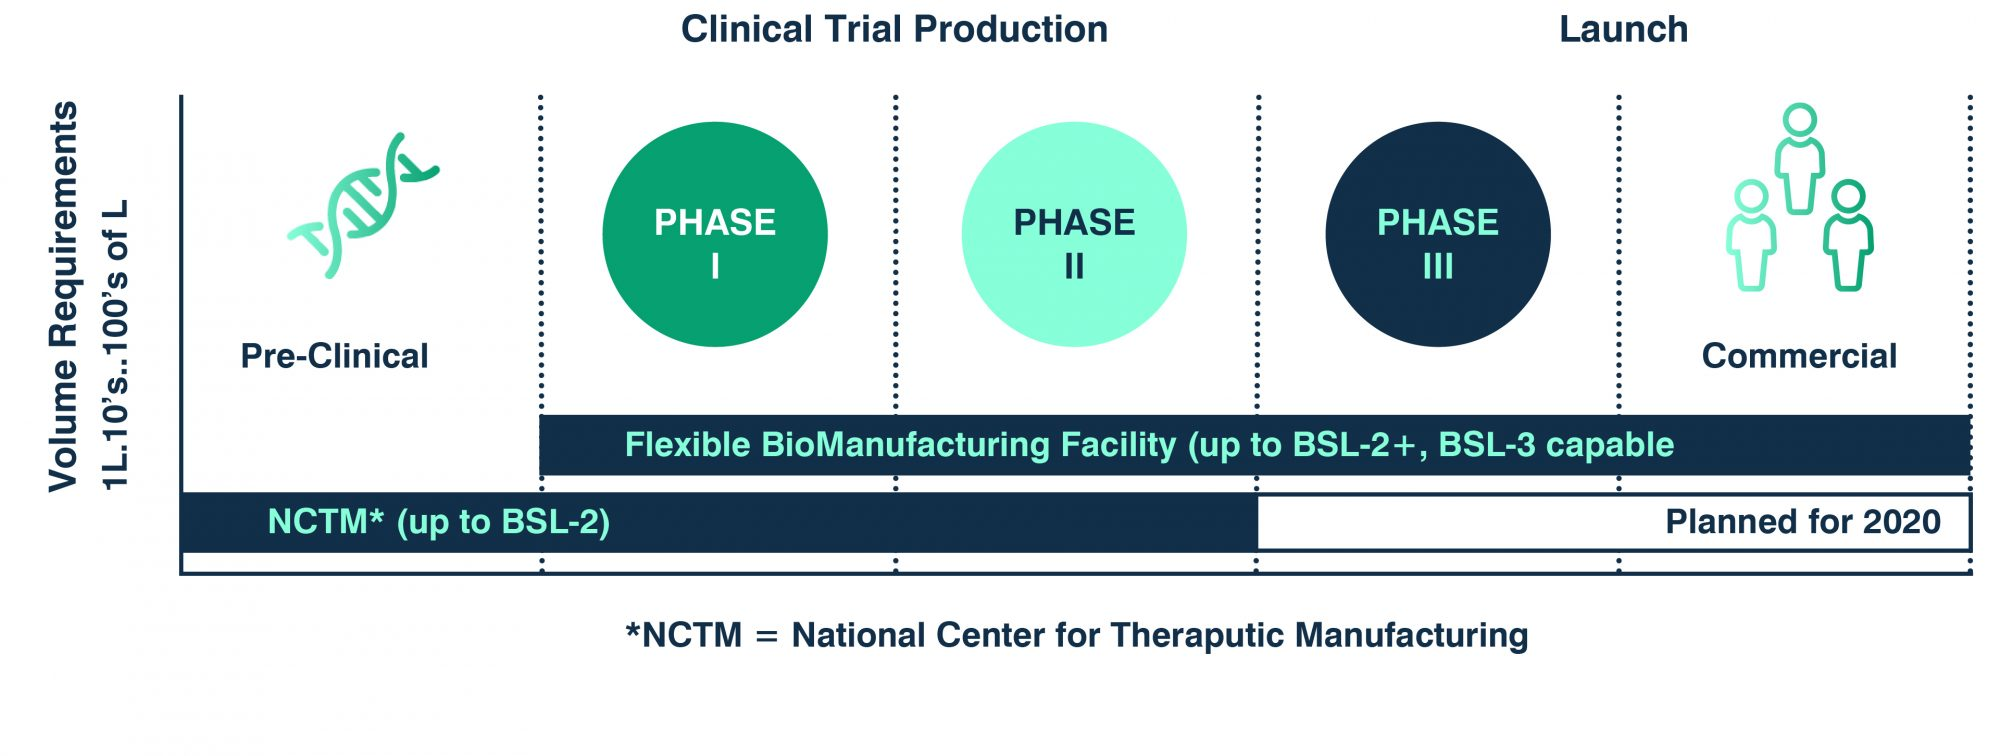 Clinical Trial Production graph